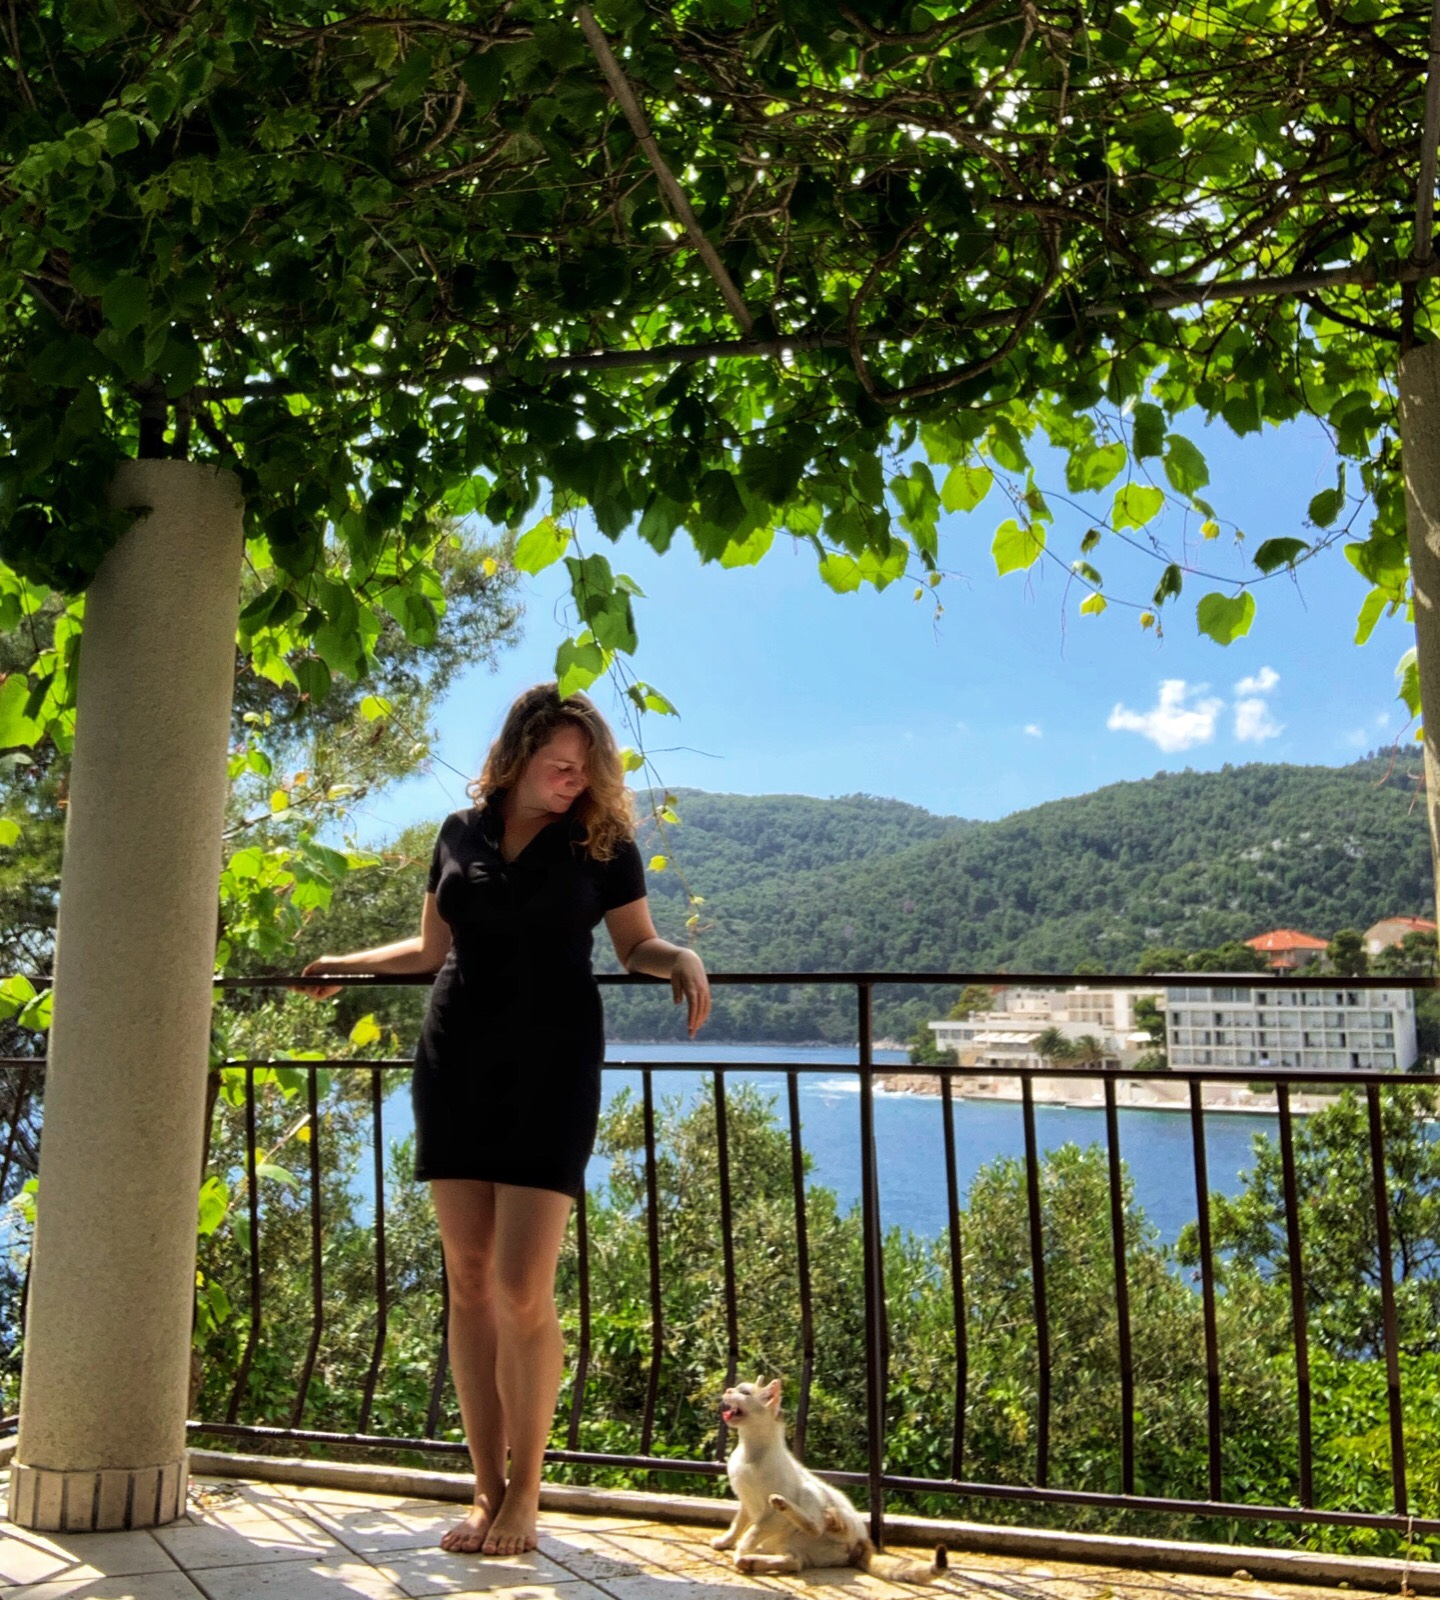 Taking selfies with a cat traveling on the Croatian island of Korcula